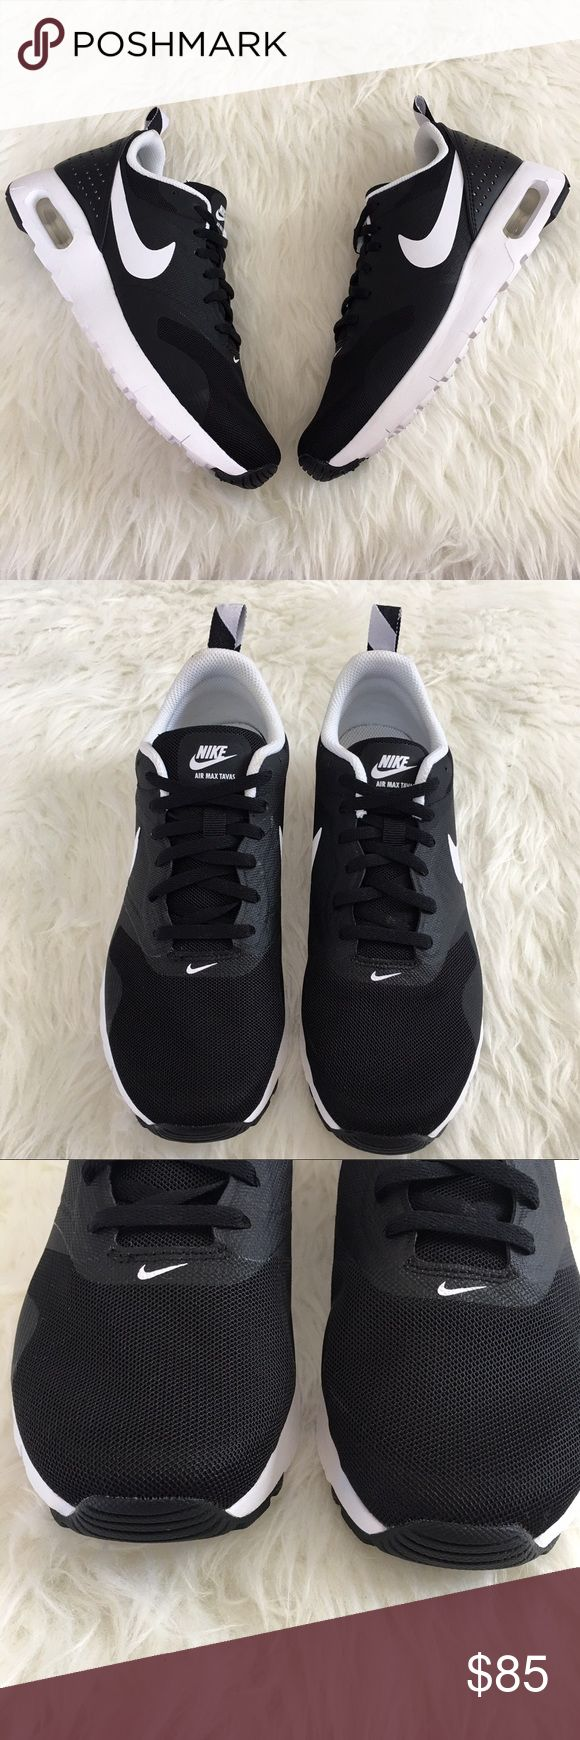 Nike Air Max Tavas Black & White Sneakers BNWOB. Never been worn. No flaws. Very lightweight, supportive and comfortable sneakers. Perfect for working out or just casual wear. Classic black and white will match all your workout outfits! 5Y is equivalent to a women's size 6.5 according to Nike's website. Nike Shoes Athletic Shoes